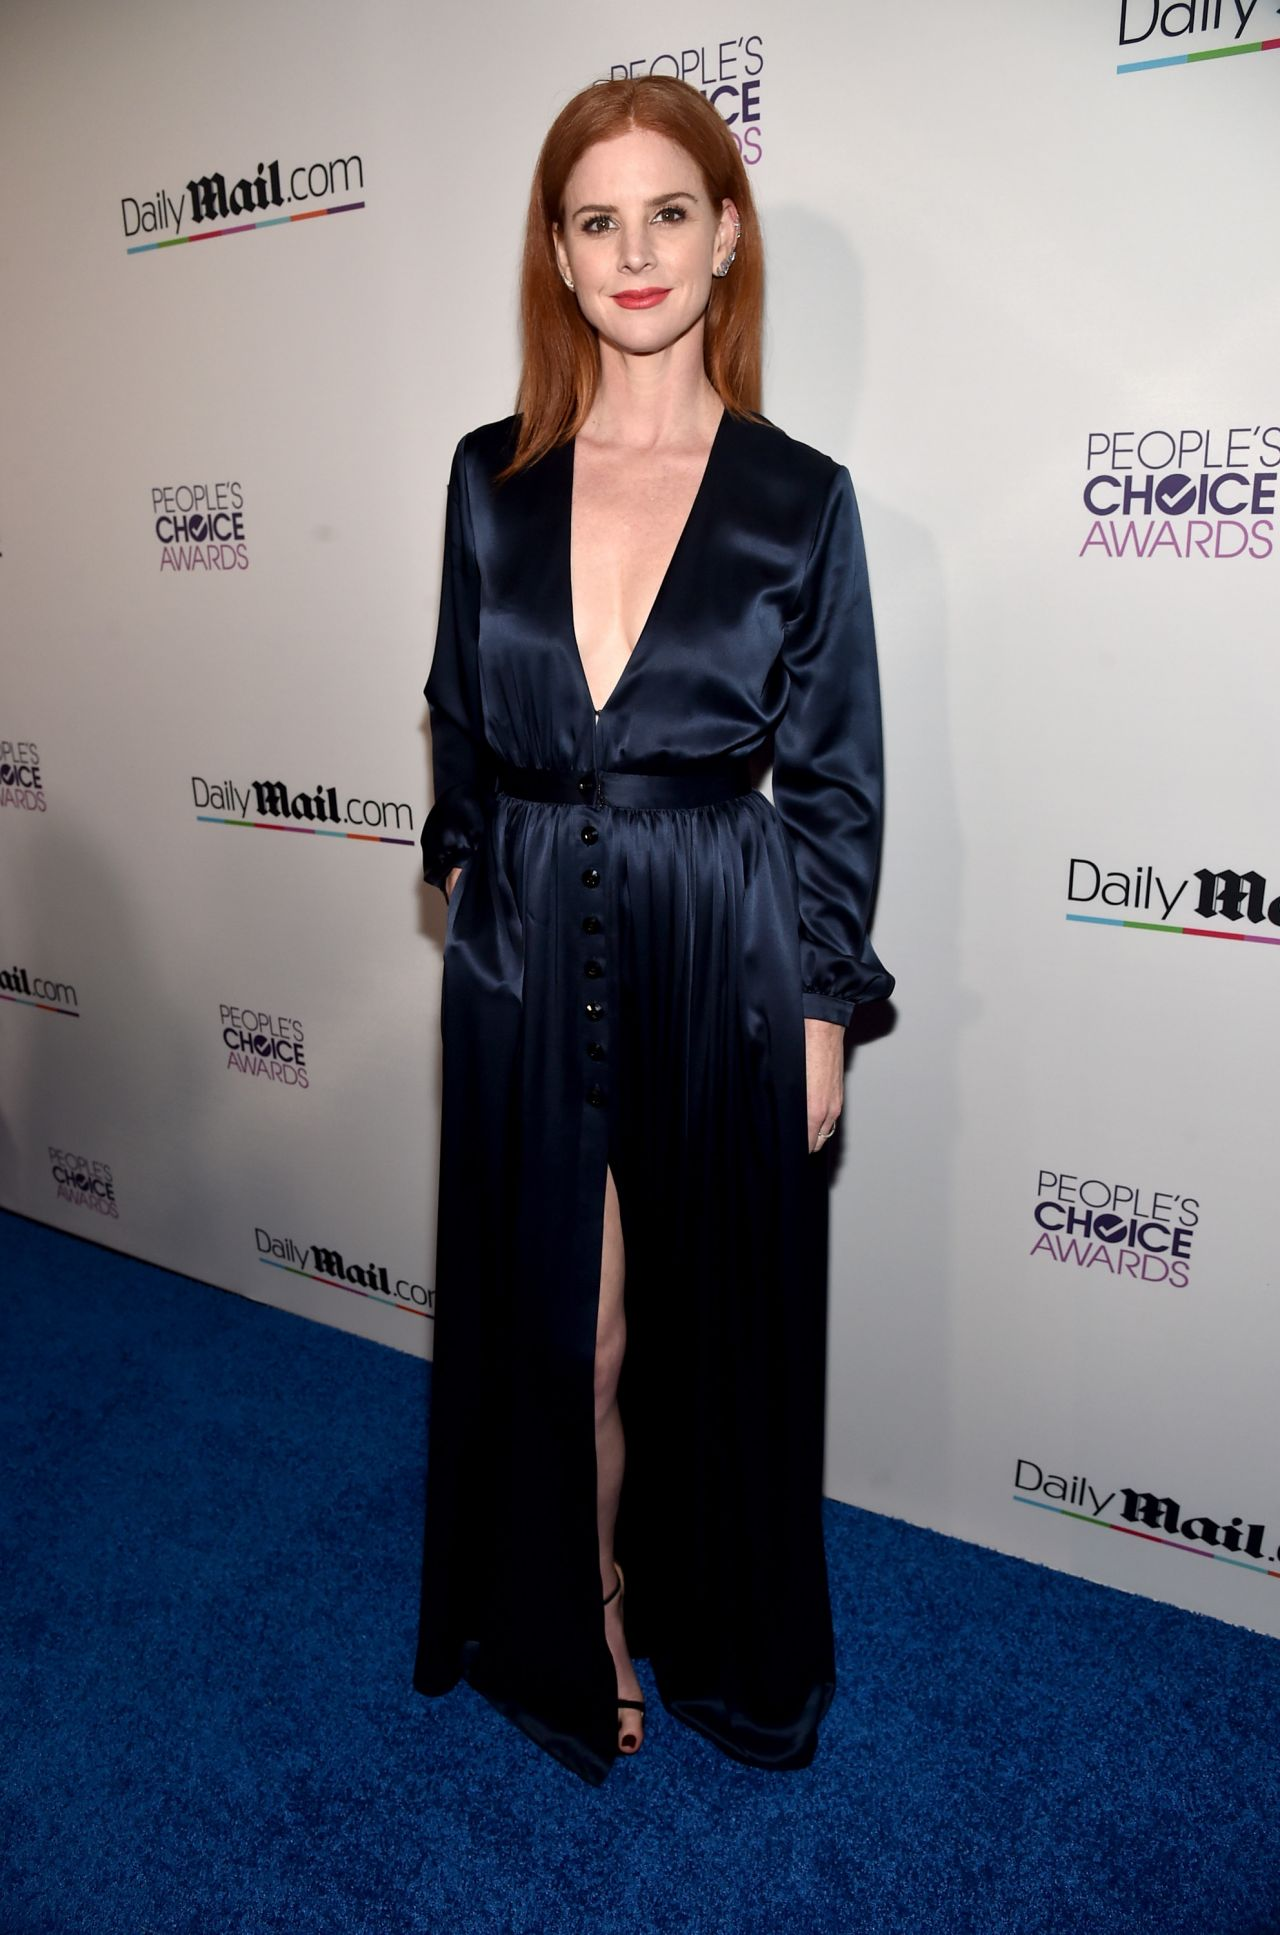 sarah-rafferty-dailymail-s-2016-people-s-choice-awards-after-party-in-los-angeles-2